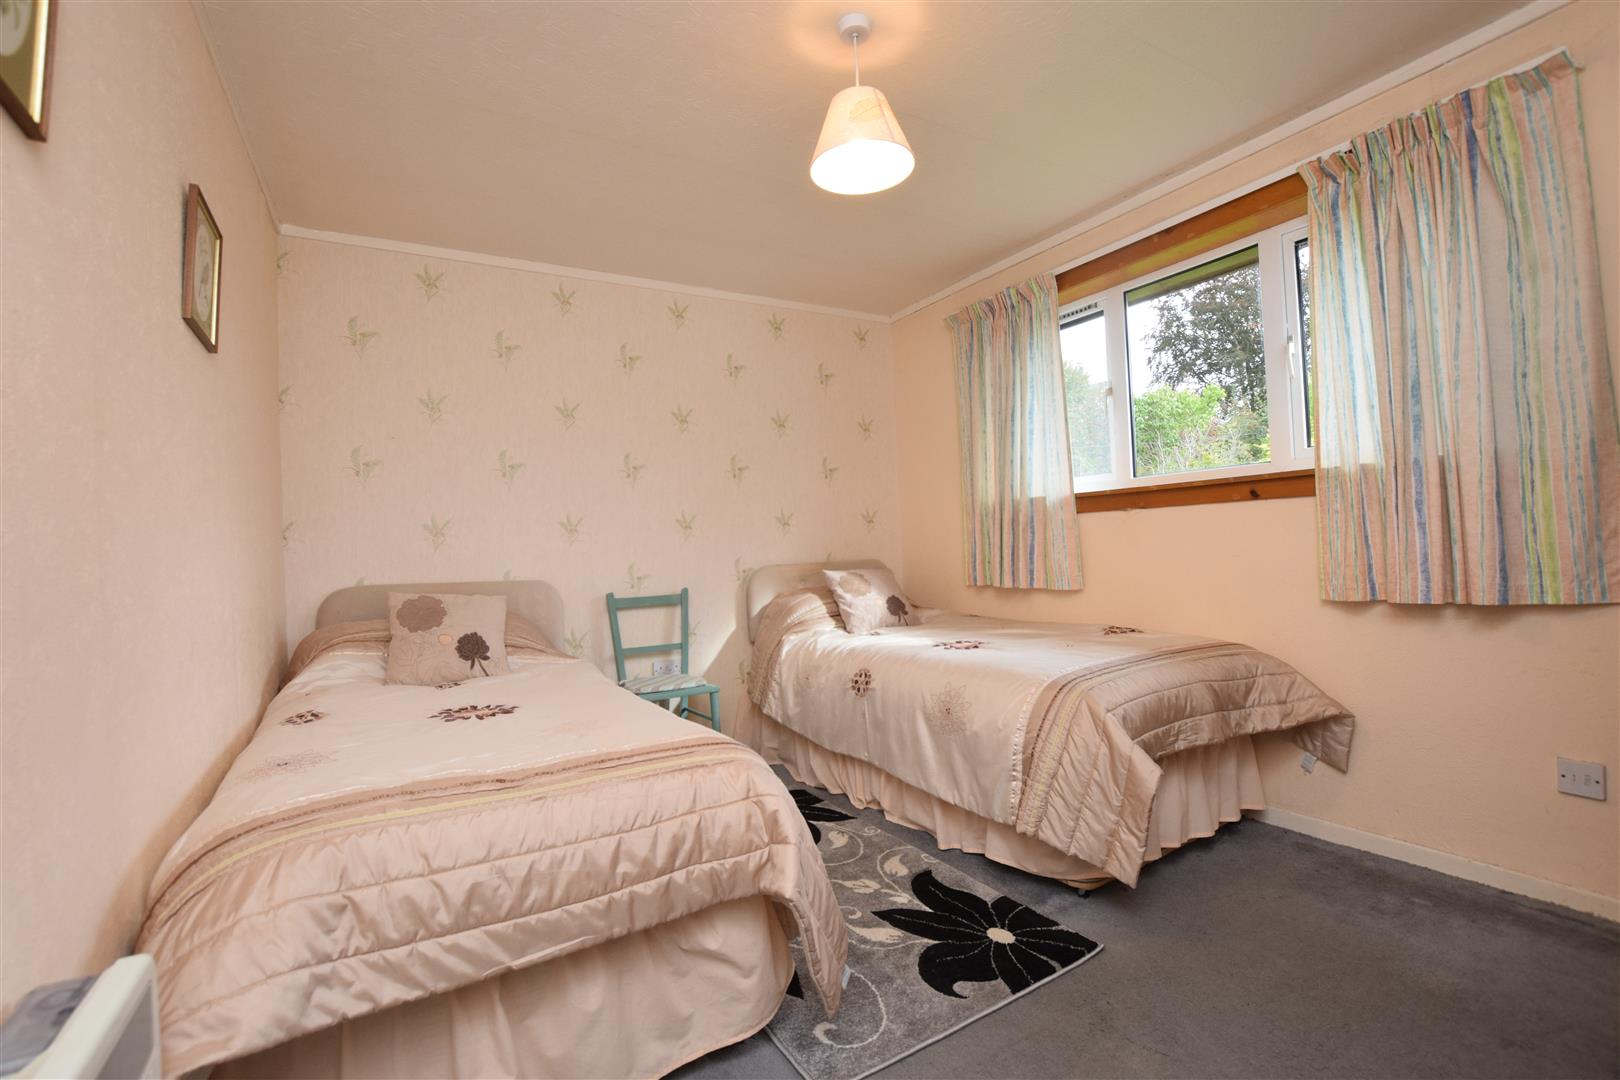 2, Tom-Na-Moan Road, Pitlochry, Perthshire, PH16 5HN, UK